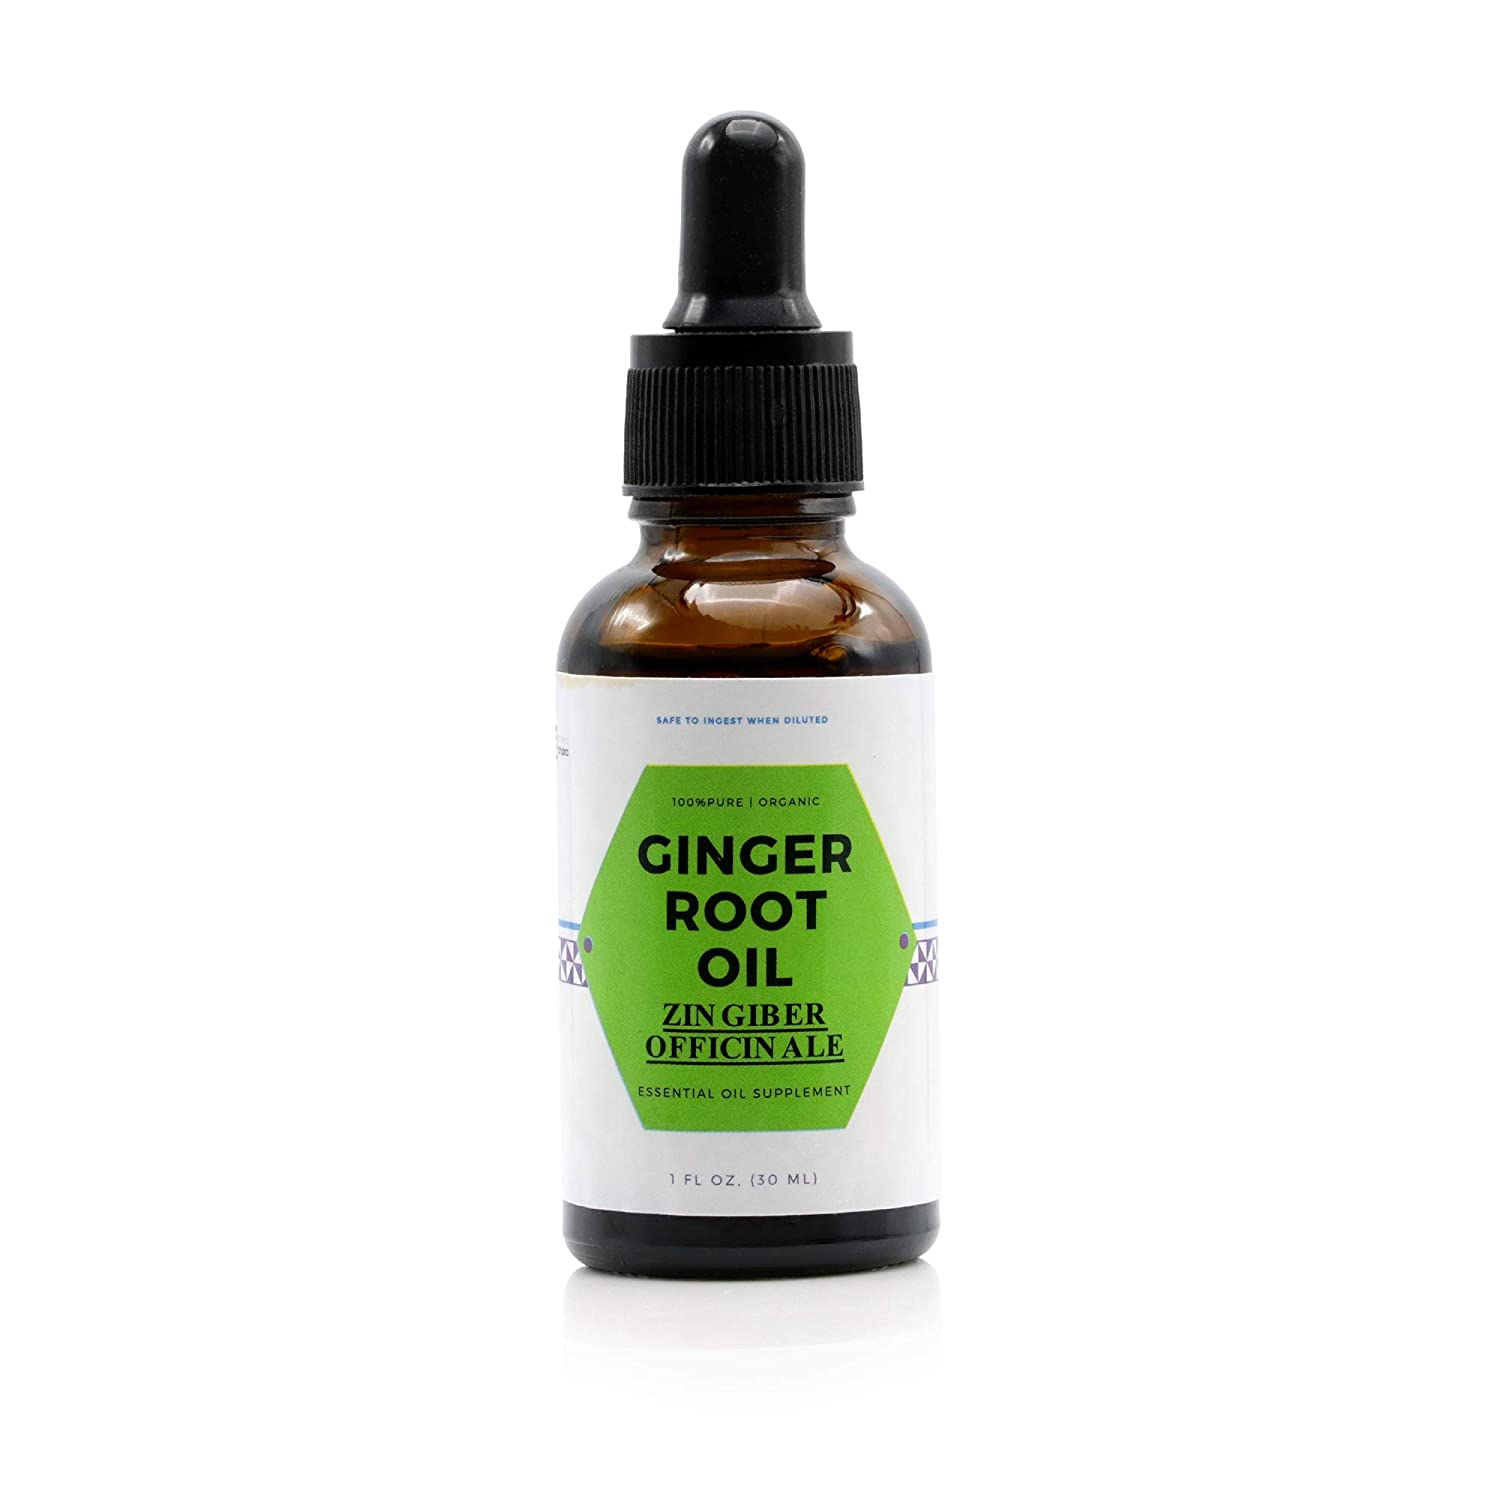 Lymphatic Ginger Root Essential Oil Large 30ml - Undiluted | Good for Aromatherapy, Baths, Arthritis & Nausea